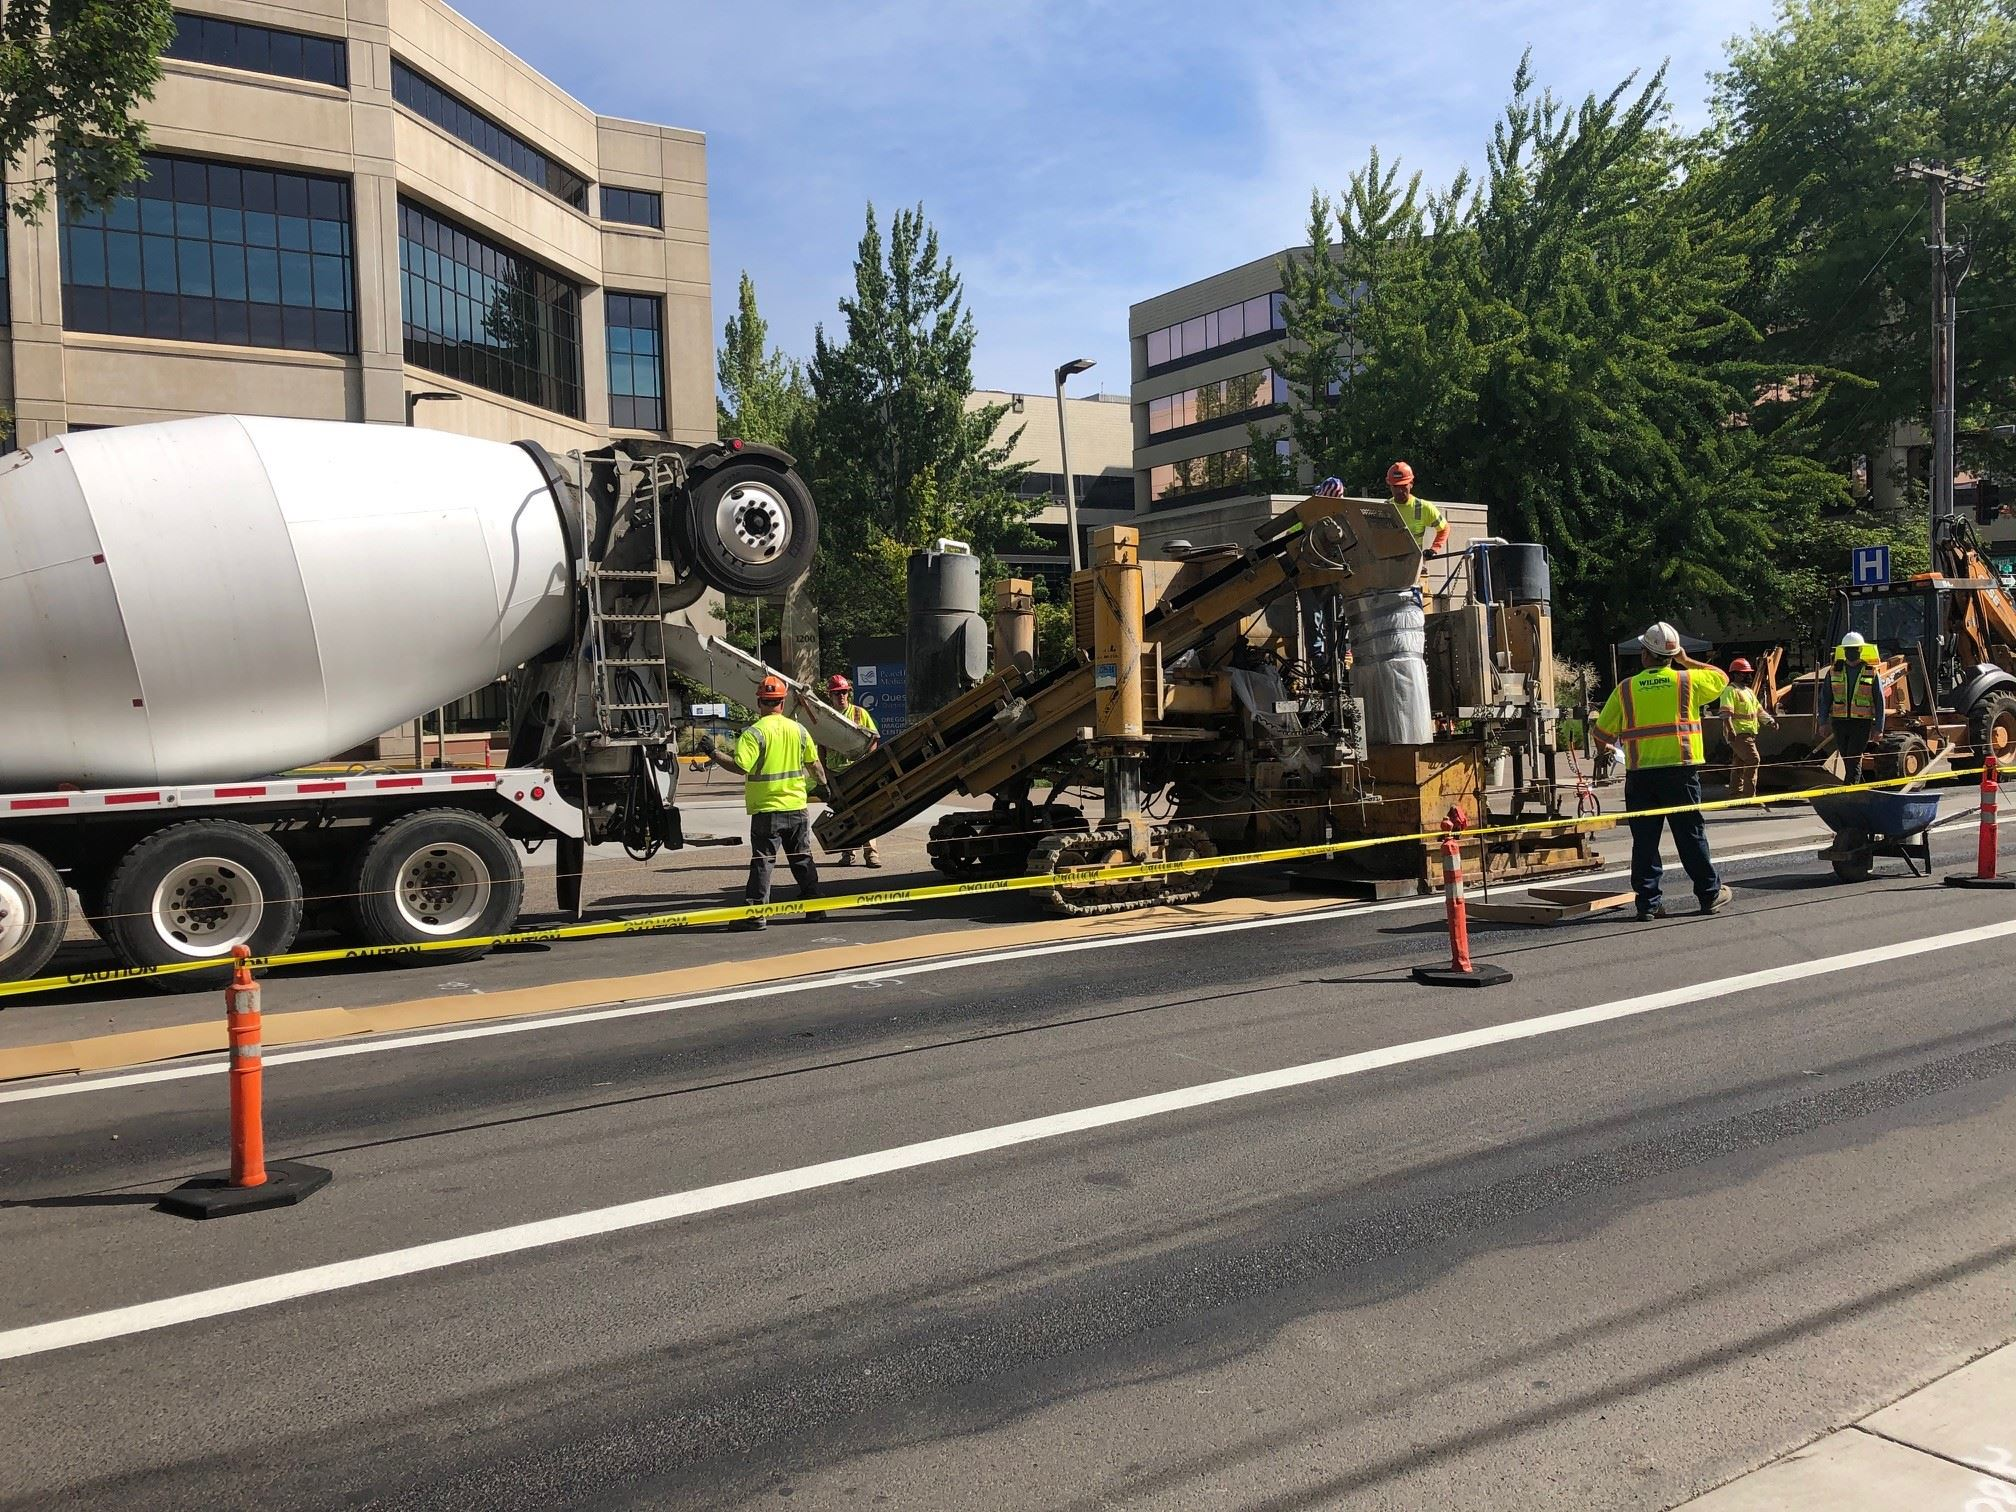 13th Avenue Bikeway concrete divider being poured.